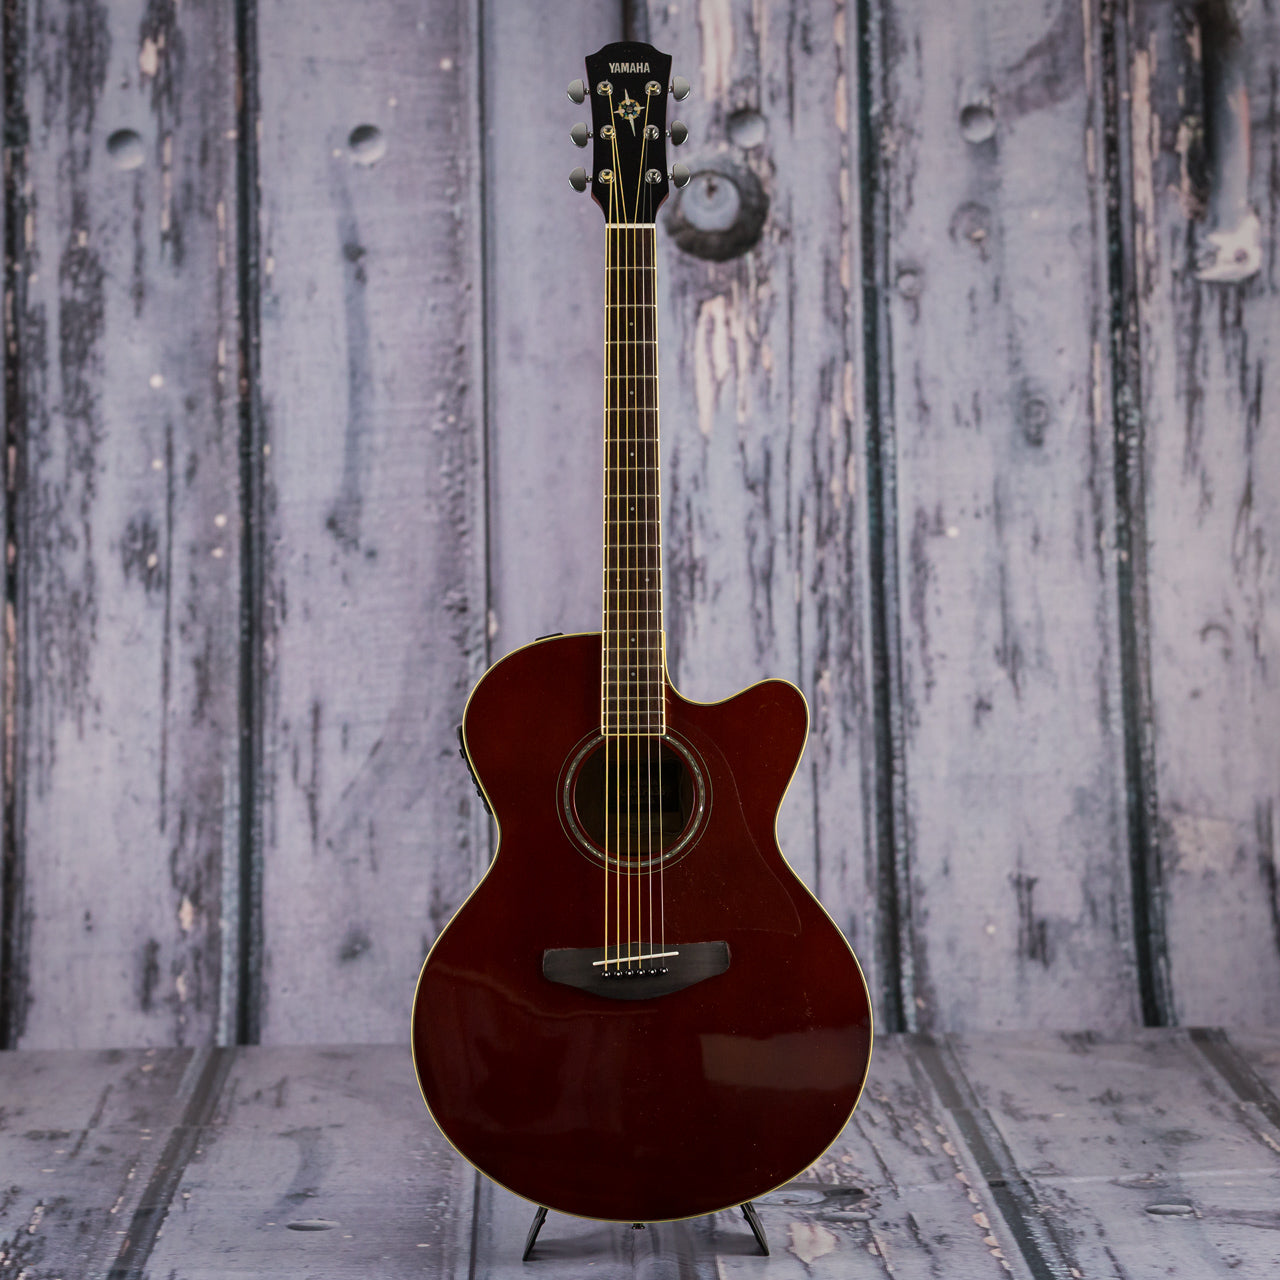 yamaha cpx600 rb acoustic electric guitar root beer red for sale replay guitar. Black Bedroom Furniture Sets. Home Design Ideas